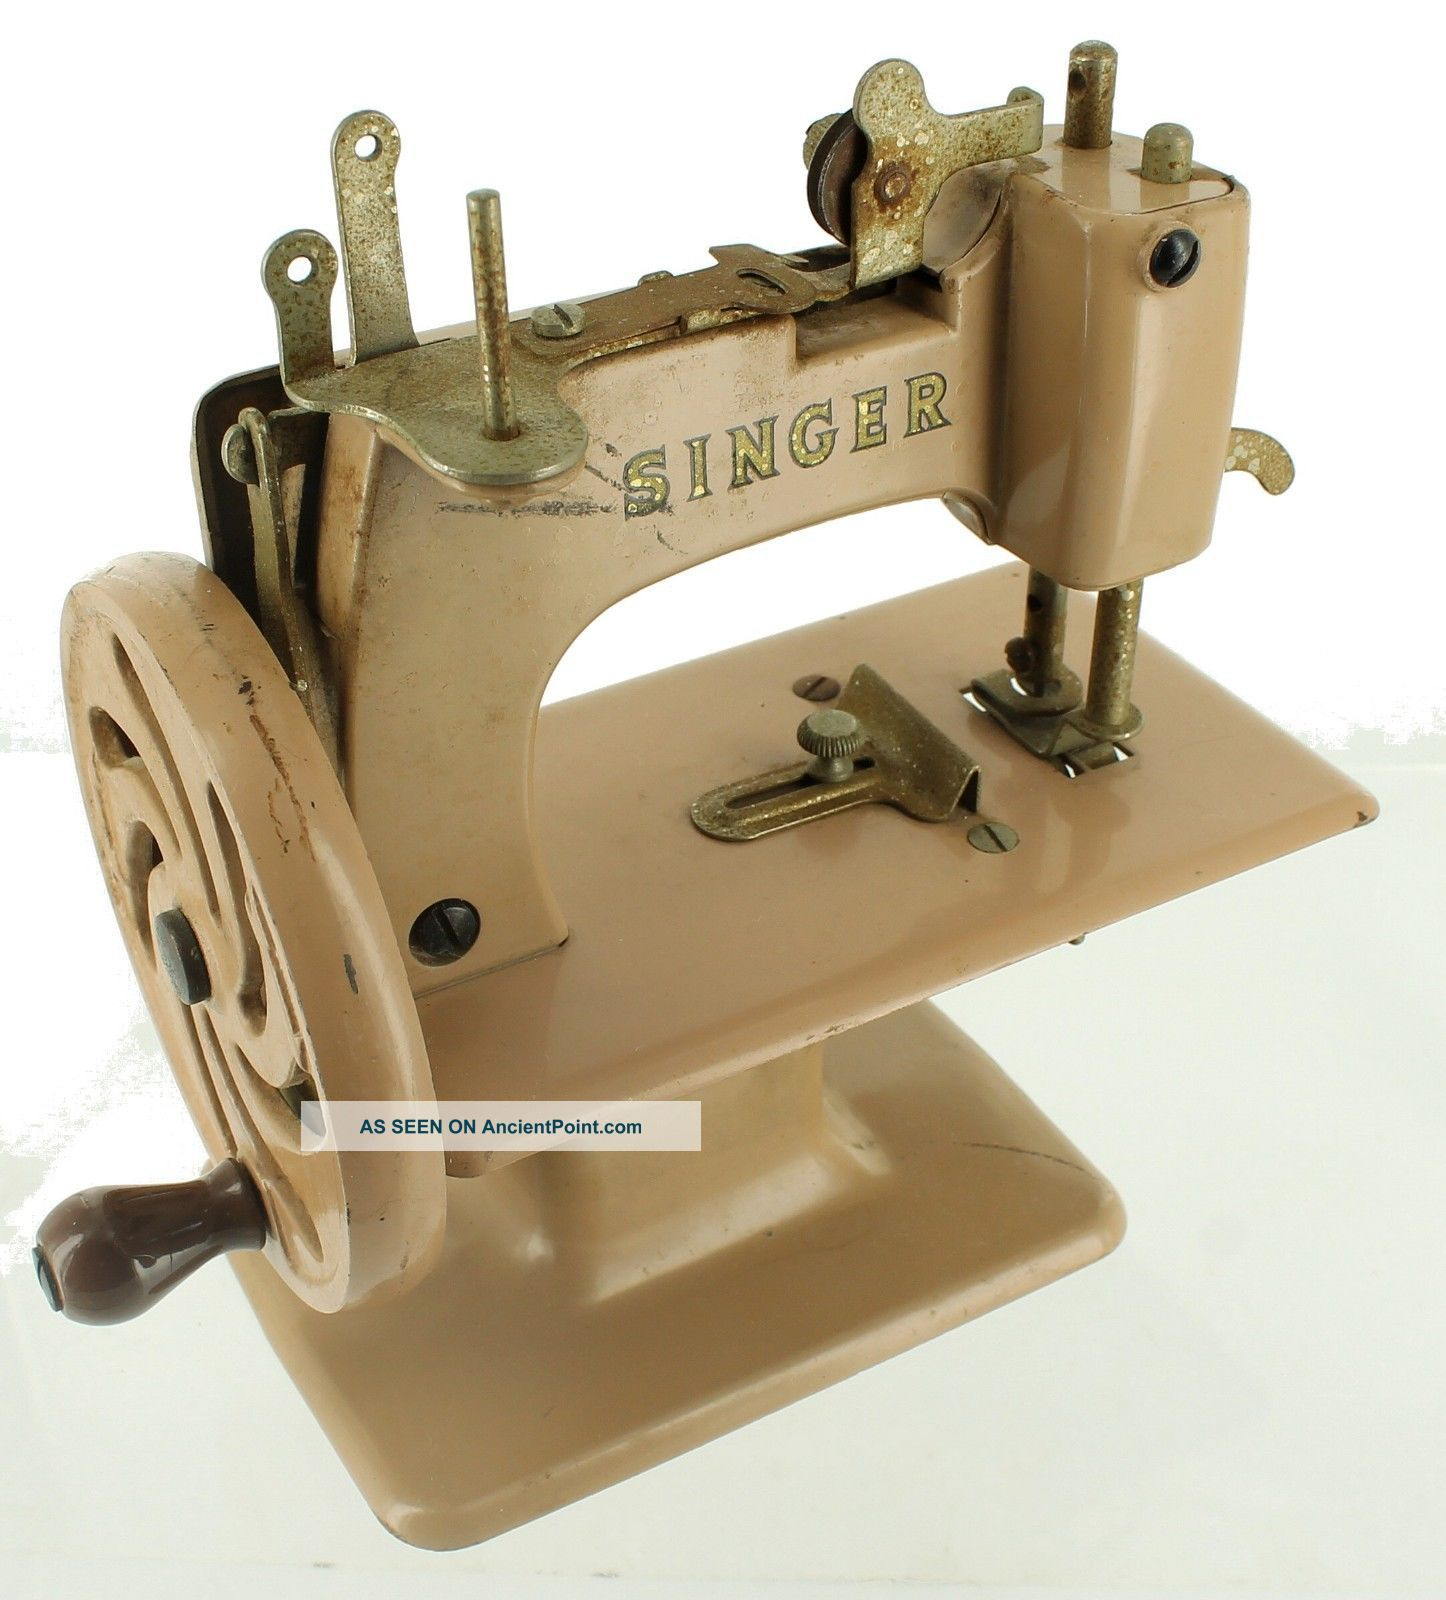 Antique Vintage Singer 20 Sewhandy Toy Sewing Machine Small Child